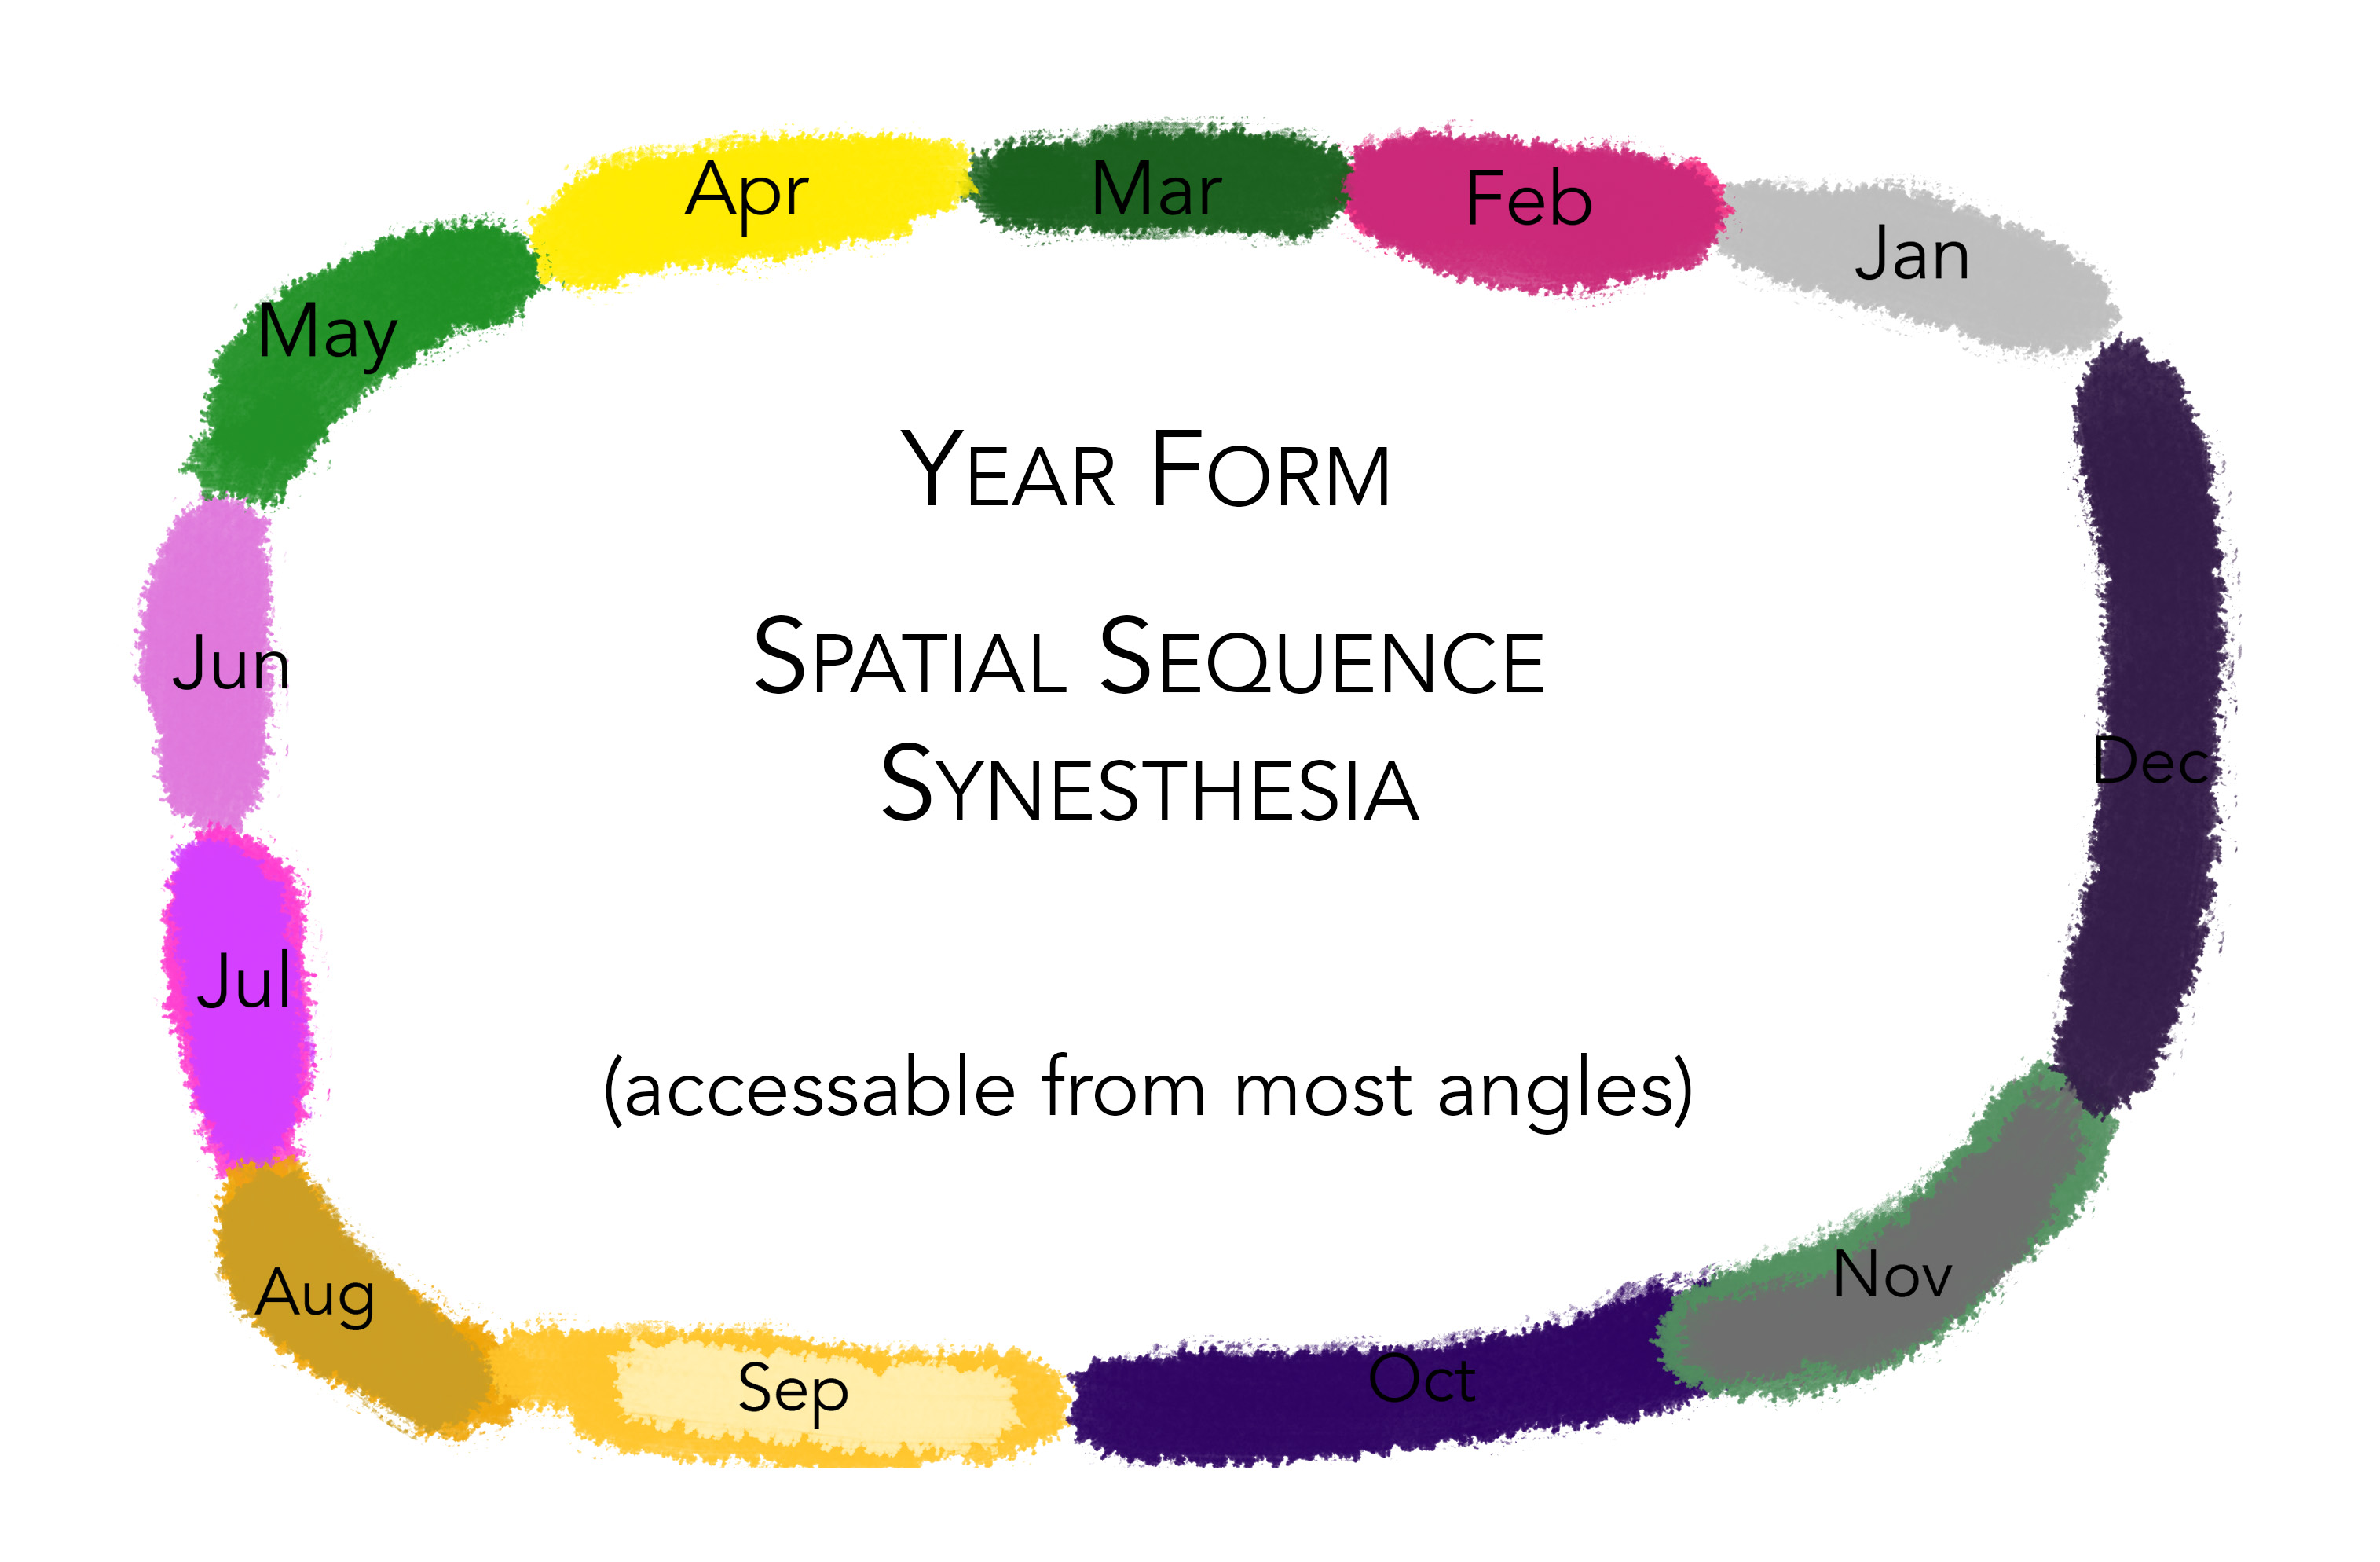 Year Form (Spatial Sequence Synesthesia) by star-kwafie on DeviantArt